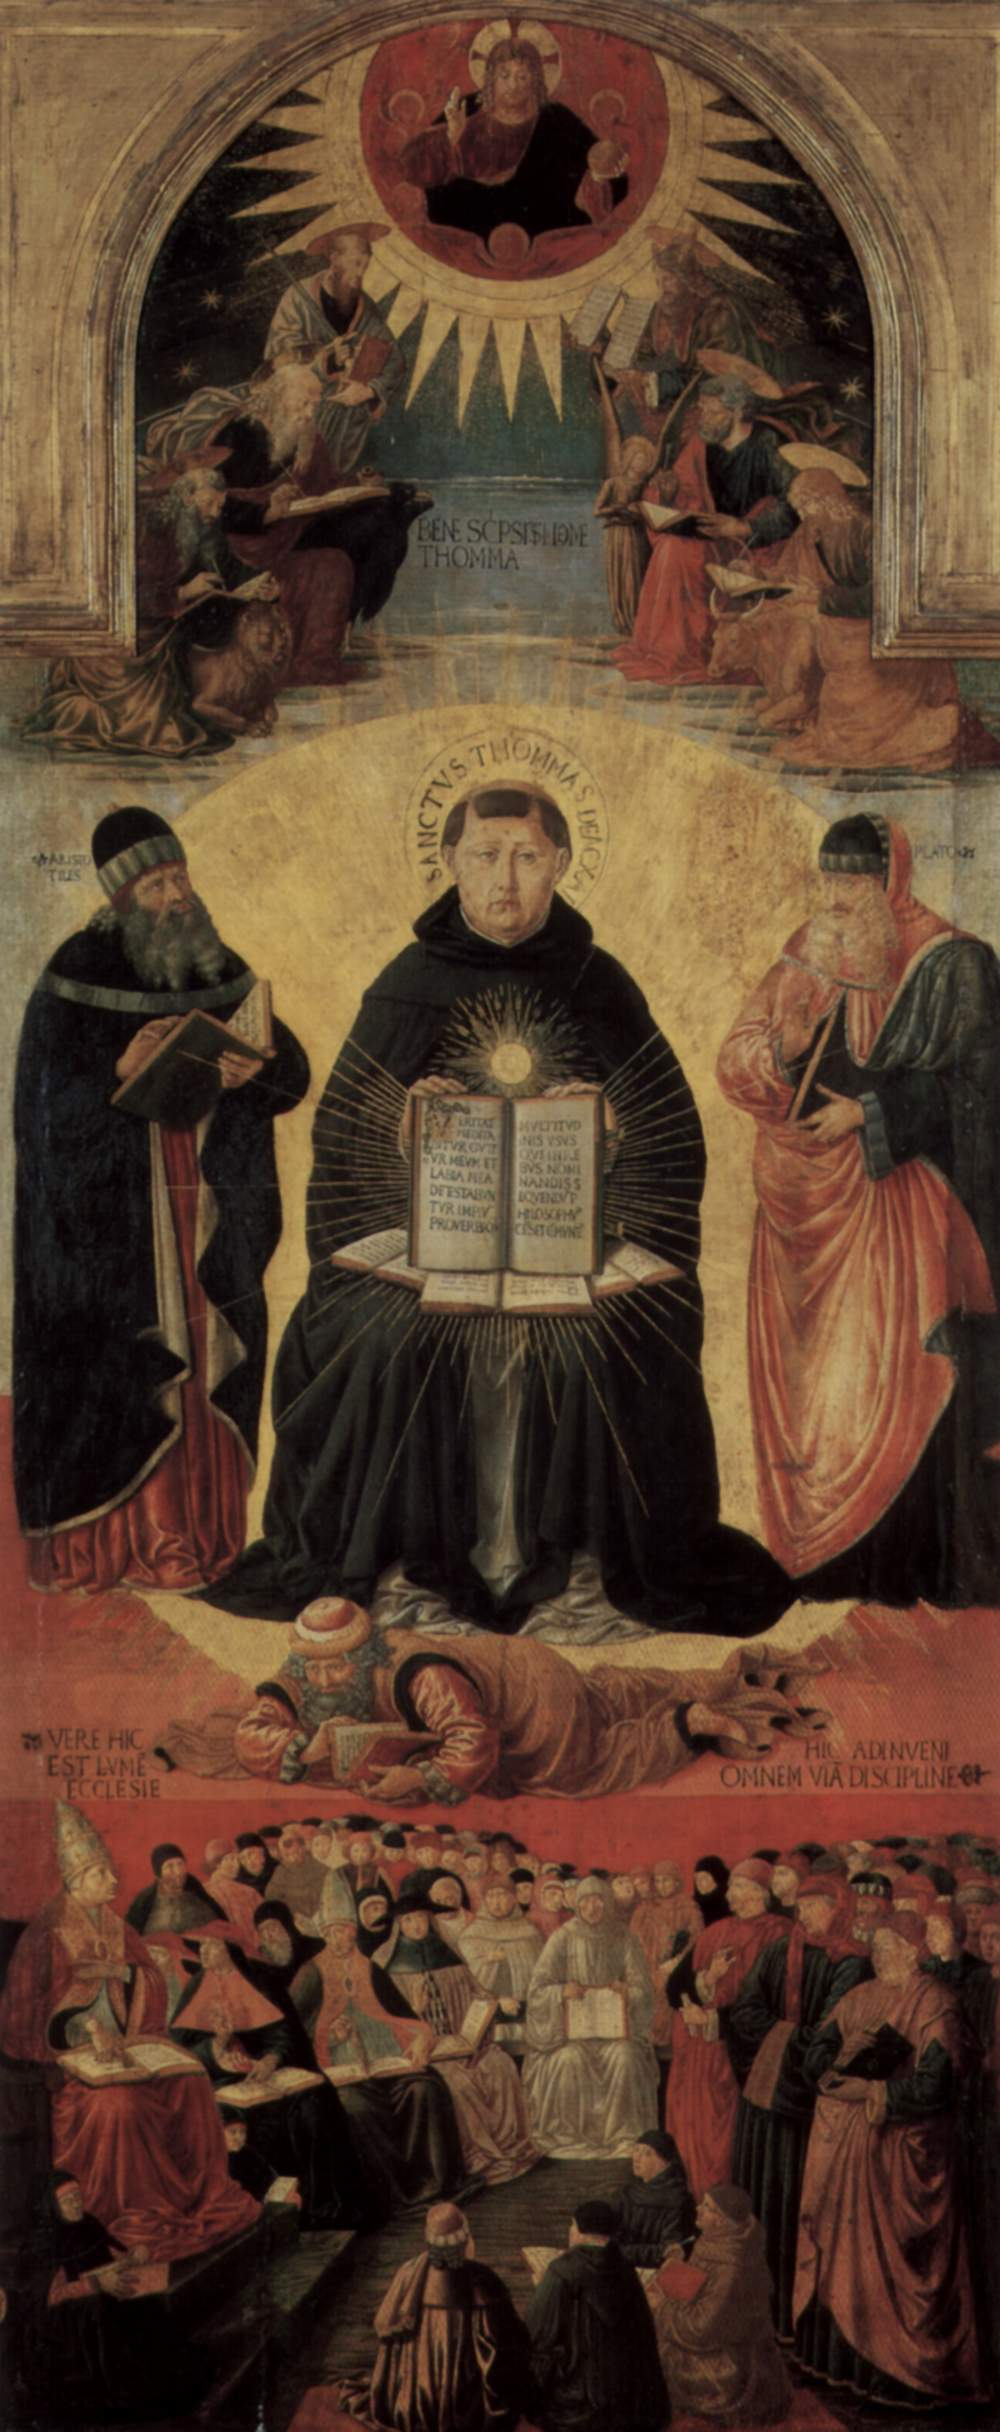 an analysis of the laws according to saint thomas aquinas A summary of summa theologica: the purpose of man in 's thomas aquinas (c 1225-1274) learn exactly what happened in this chapter, scene, or section of thomas aquinas (c 1225-1274) and what it means perfect for acing essays, tests summary & analysis summa theologica: structure.